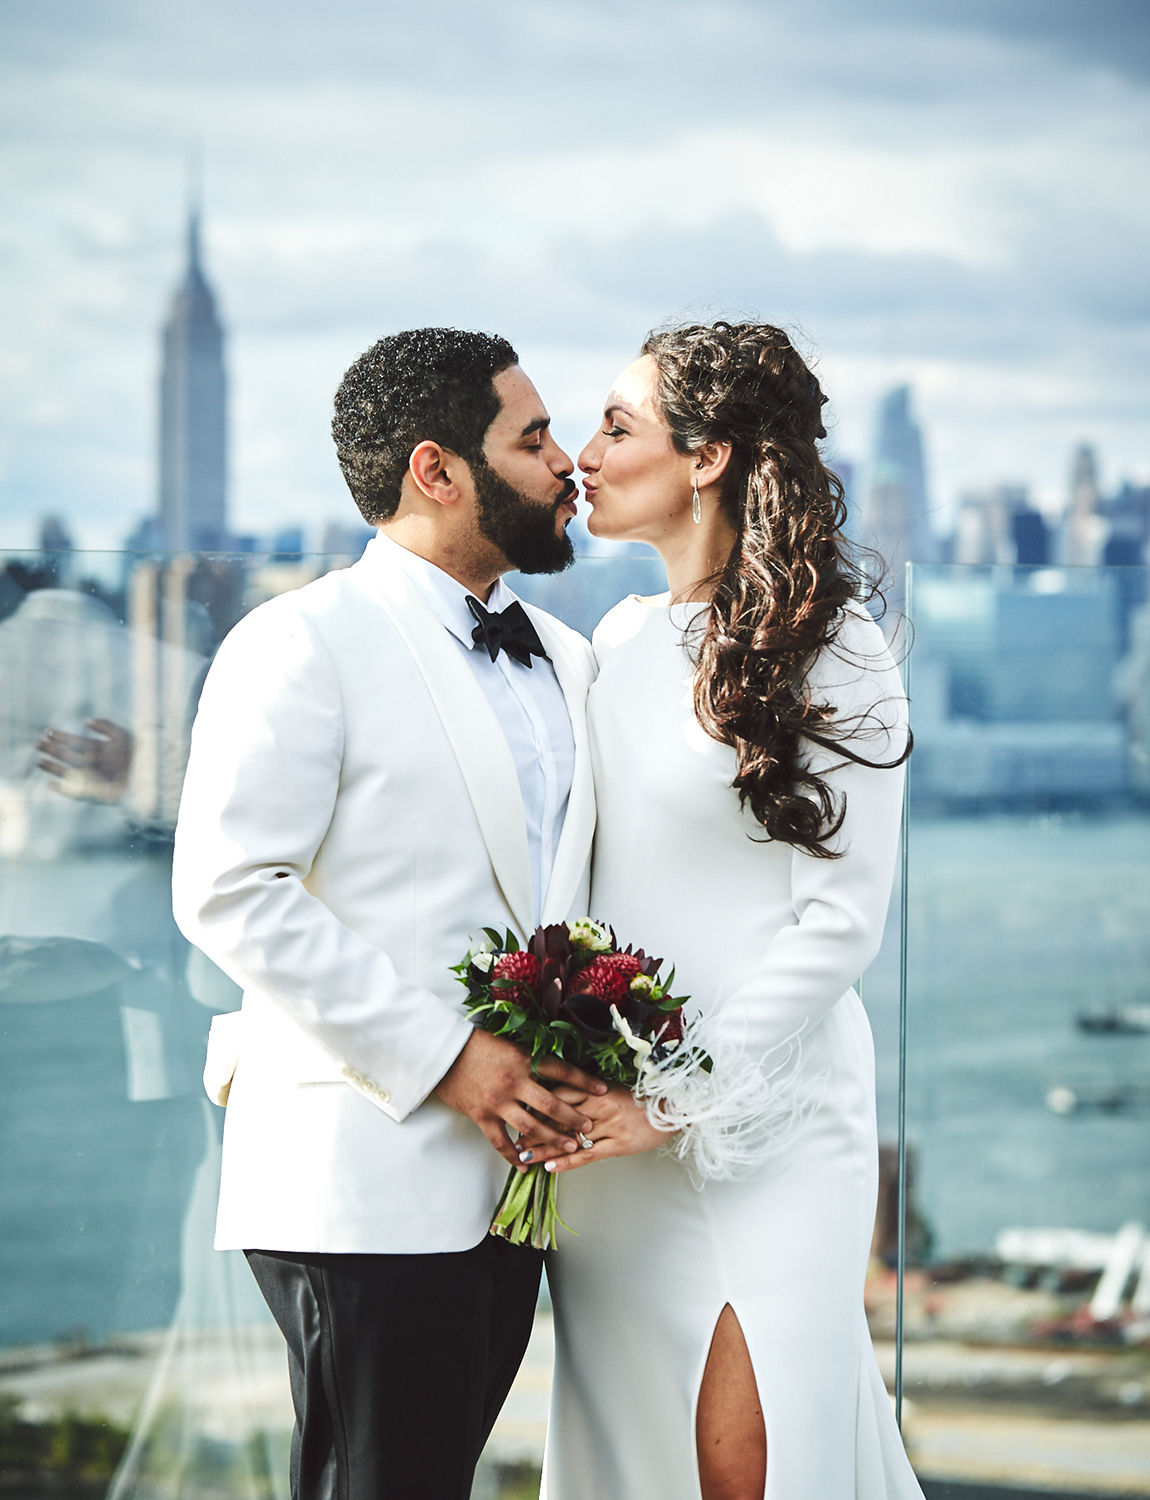 170930_WilliamValeWeddingPhotography_BrooklynWeddingPhotographer_By_BriJohnsonWeddings_0079.jpg